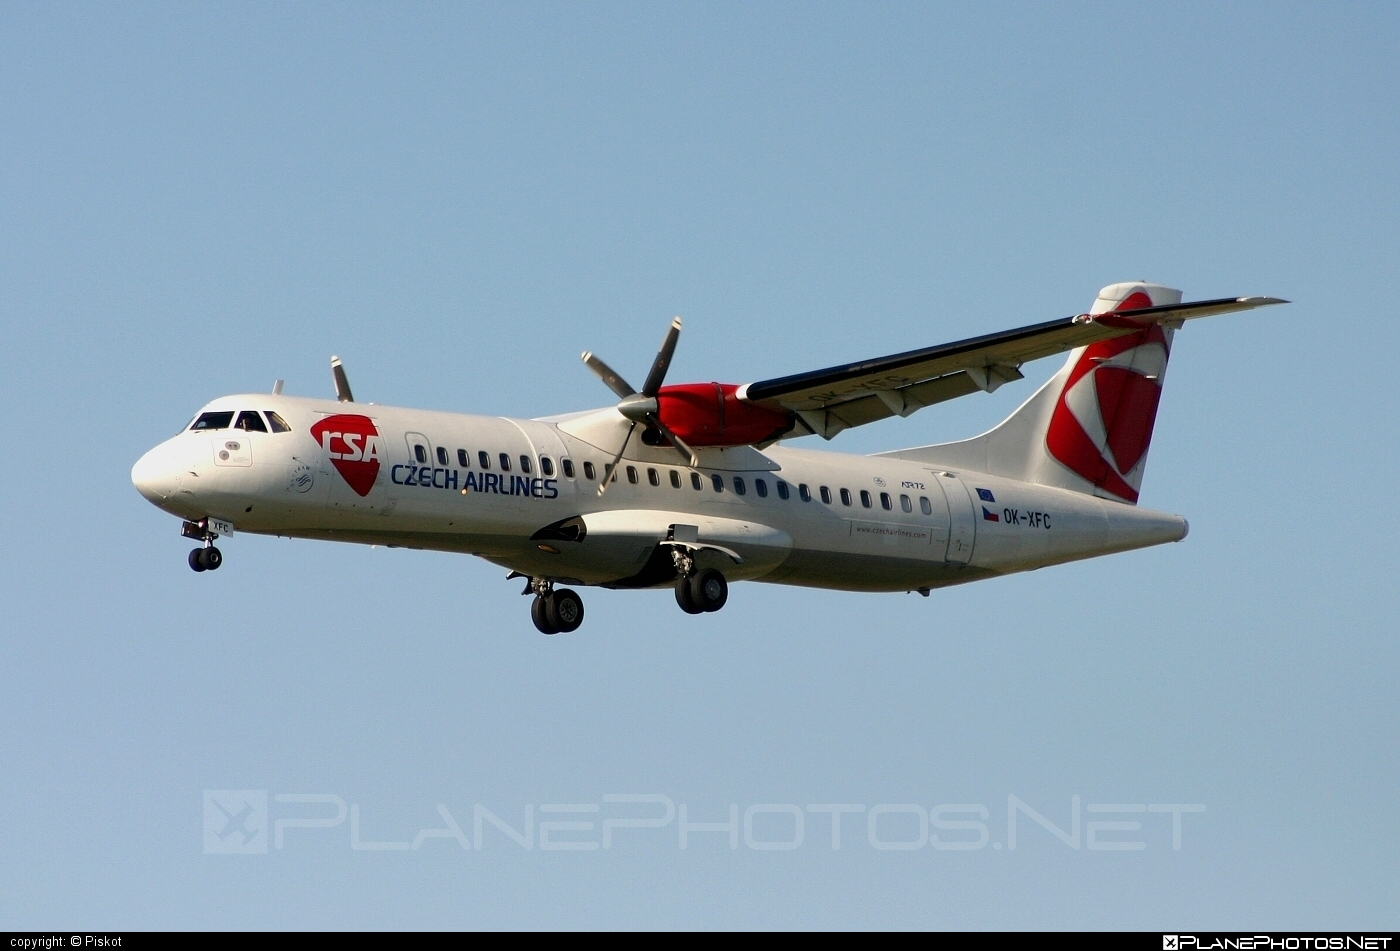 ATR 72-202 - OK-XFC operated by CSA Czech Airlines #atr #csa #czechairlines